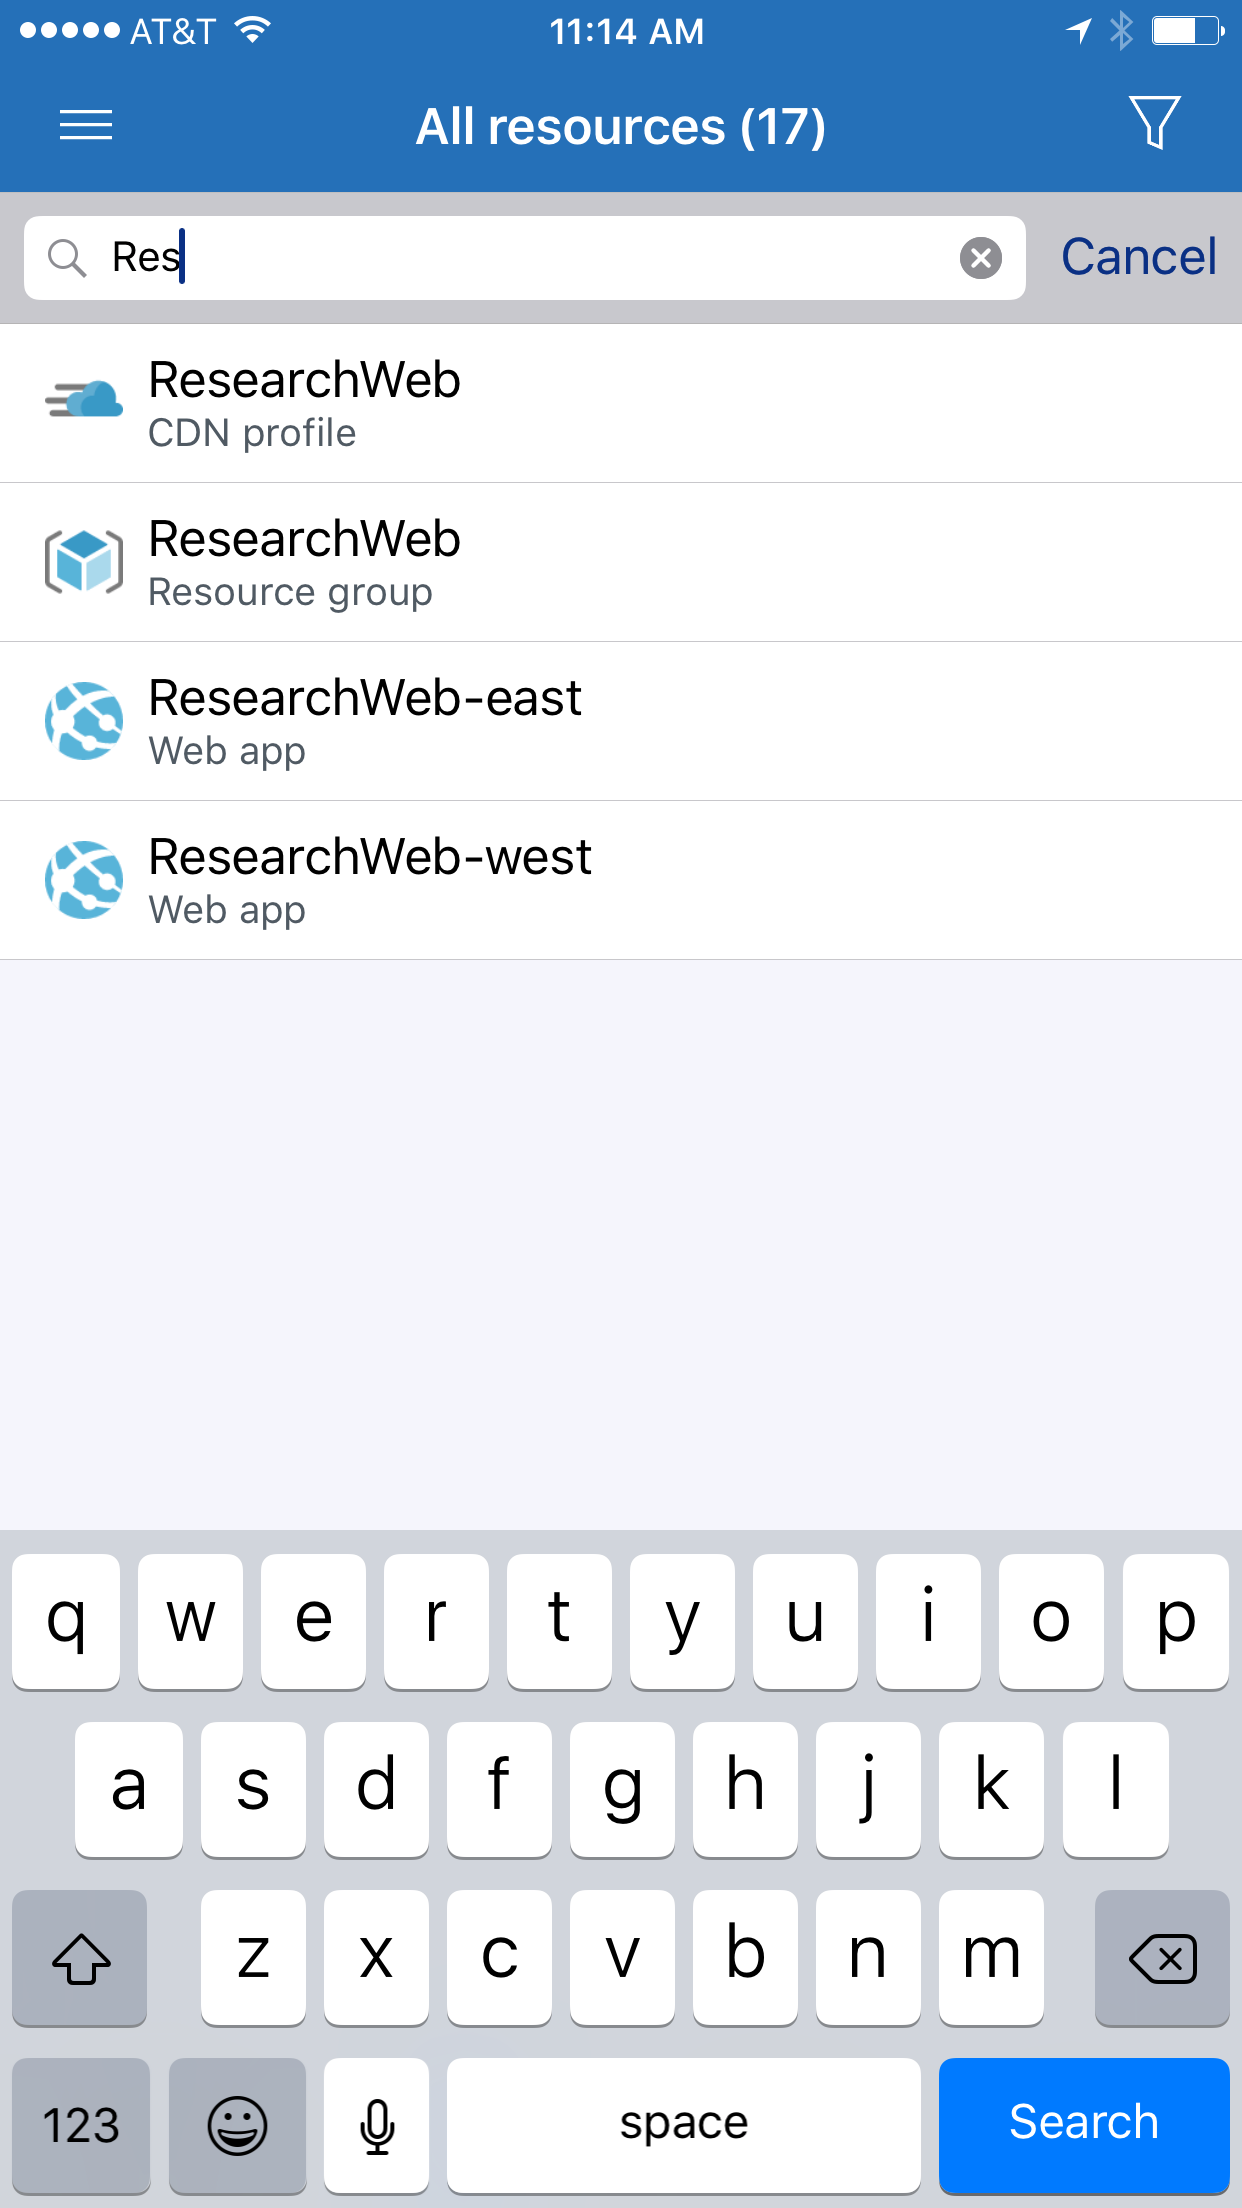 Search for resources and resource groups by name